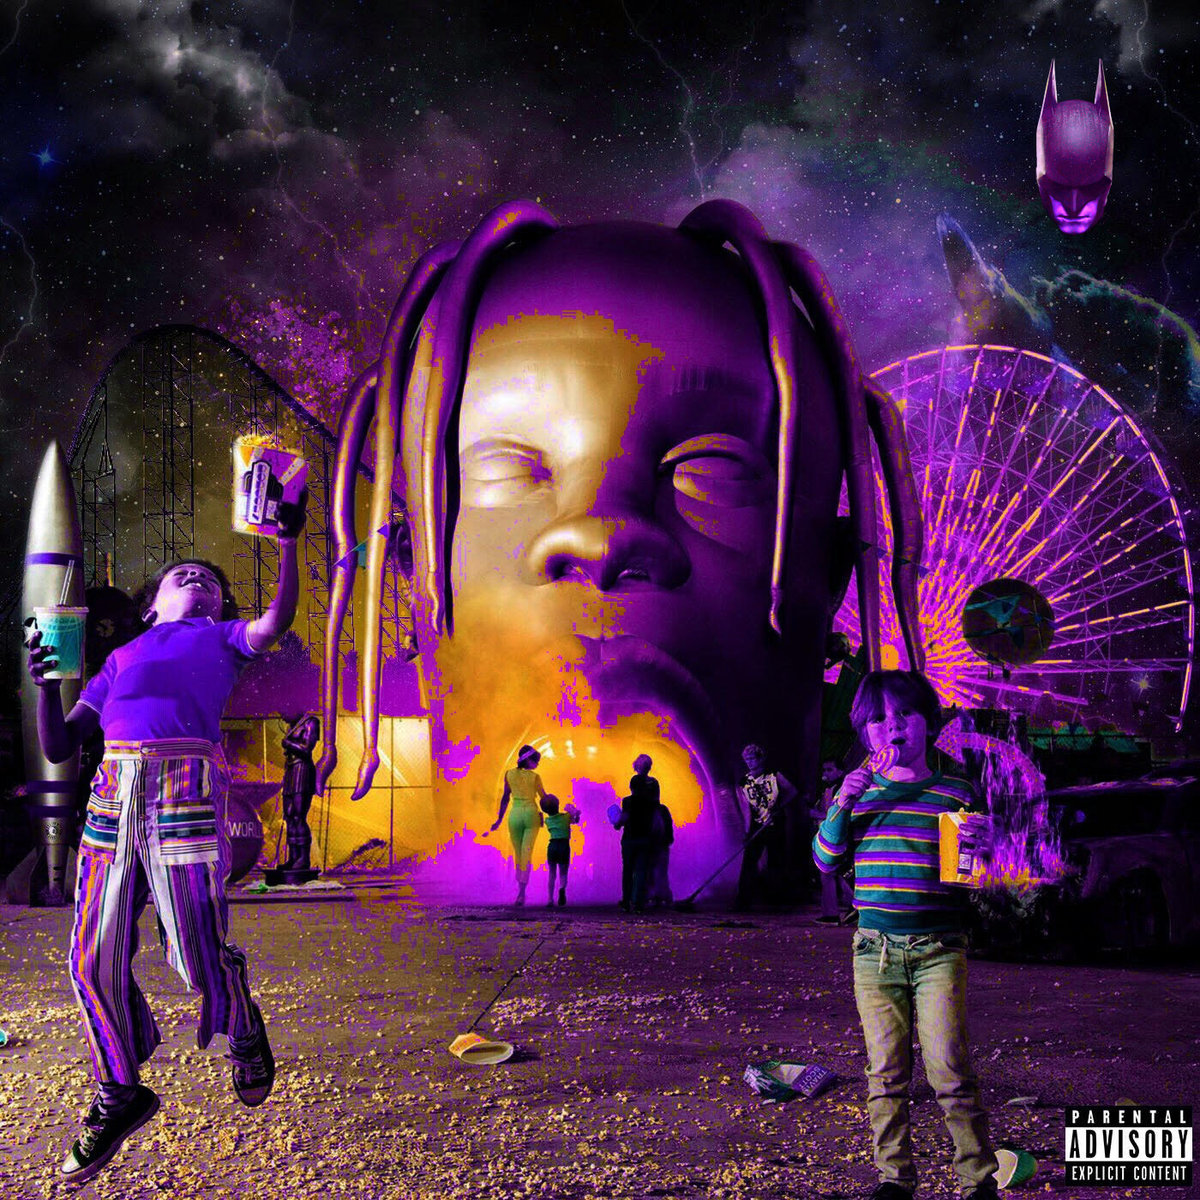 Travis Scott Feat Drake Sicko Mode Mp3 Download: SICKO MODE (Chopped & Screwed)